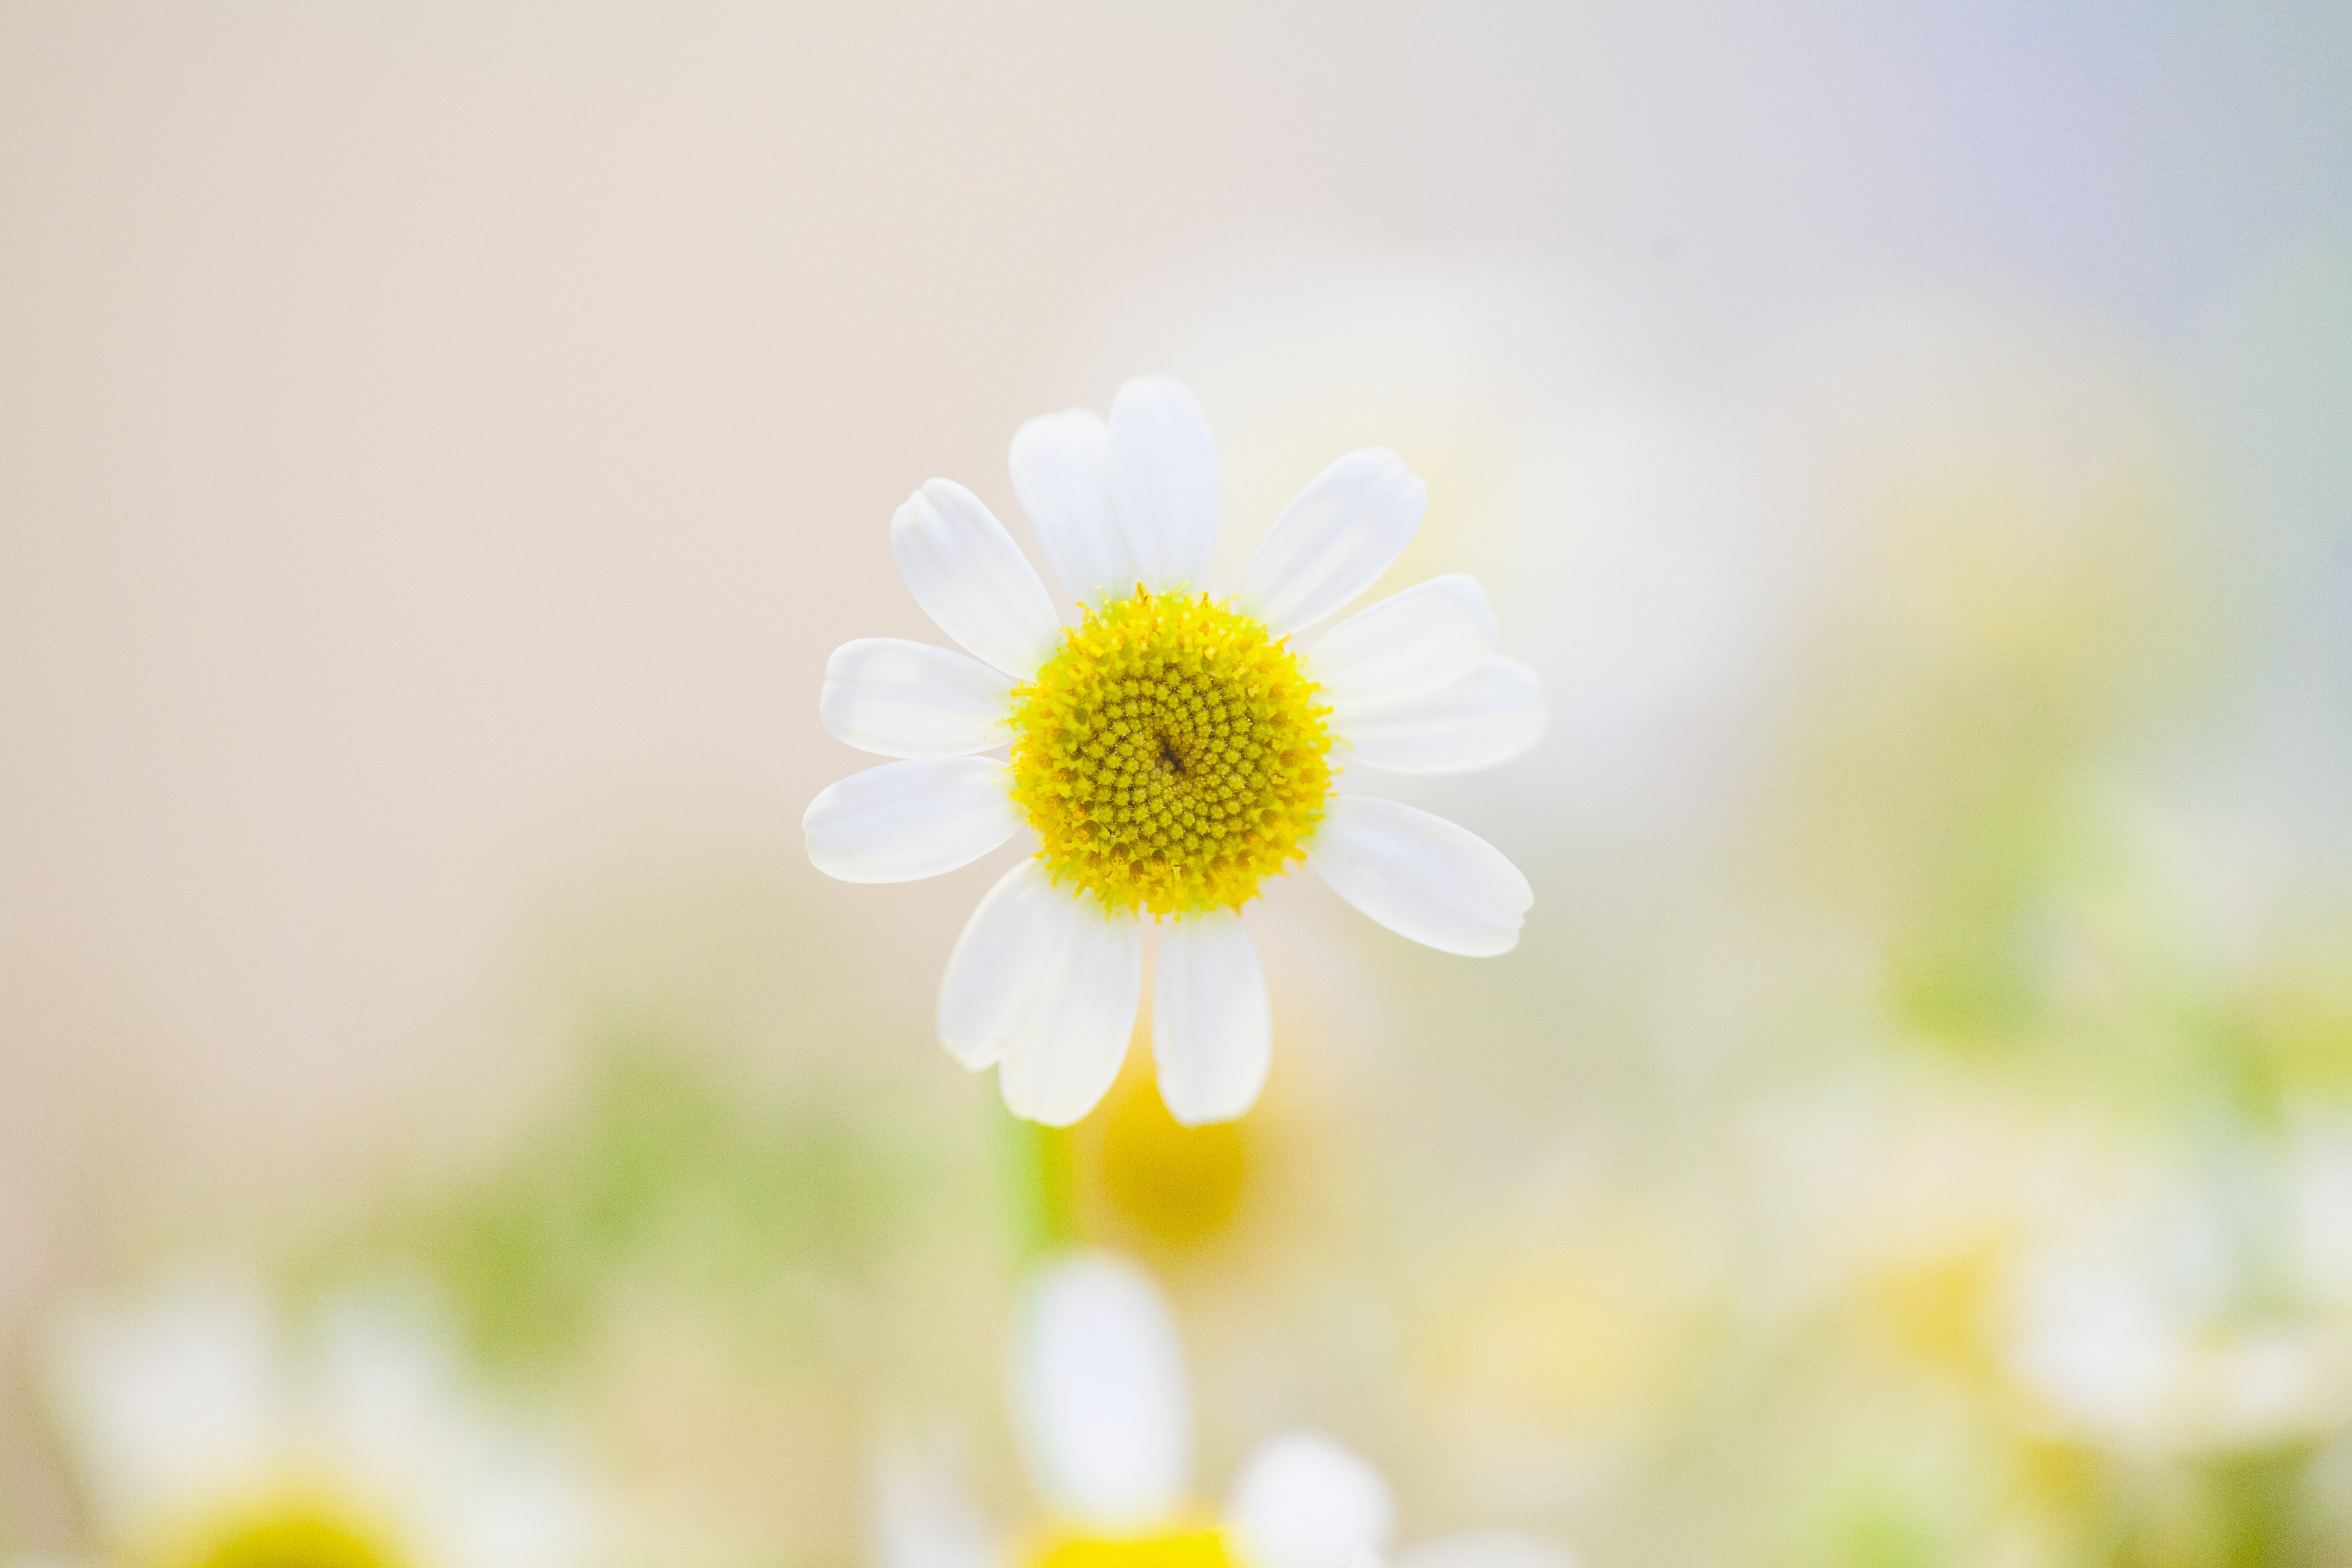 A daisy with a yellow center and white petals